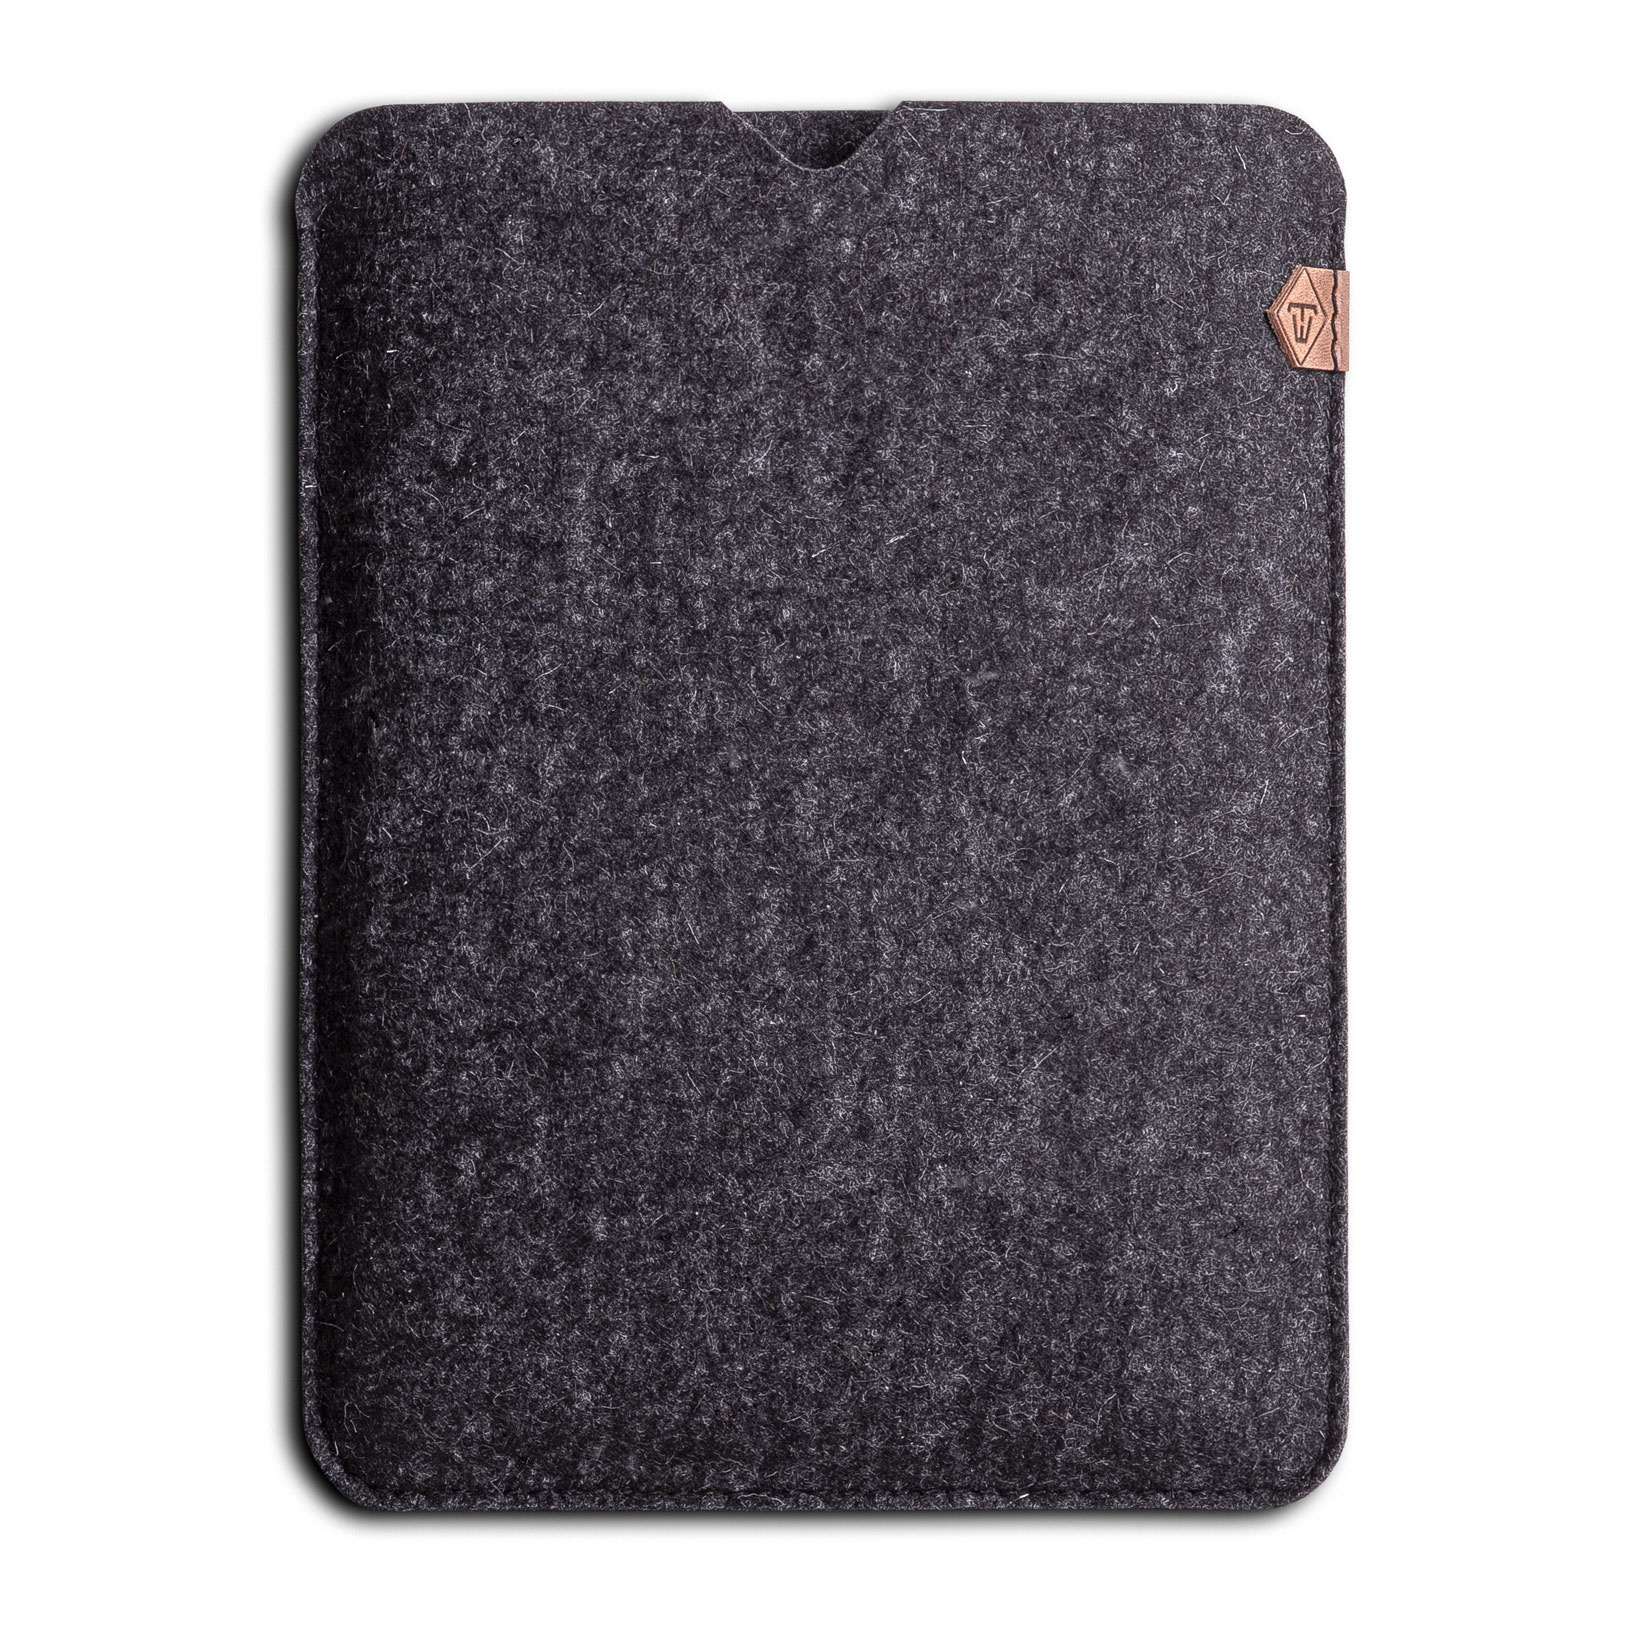 iPad Pro 11 12.9 Air 10.9 10.2 felt sleeve SOFTWERK